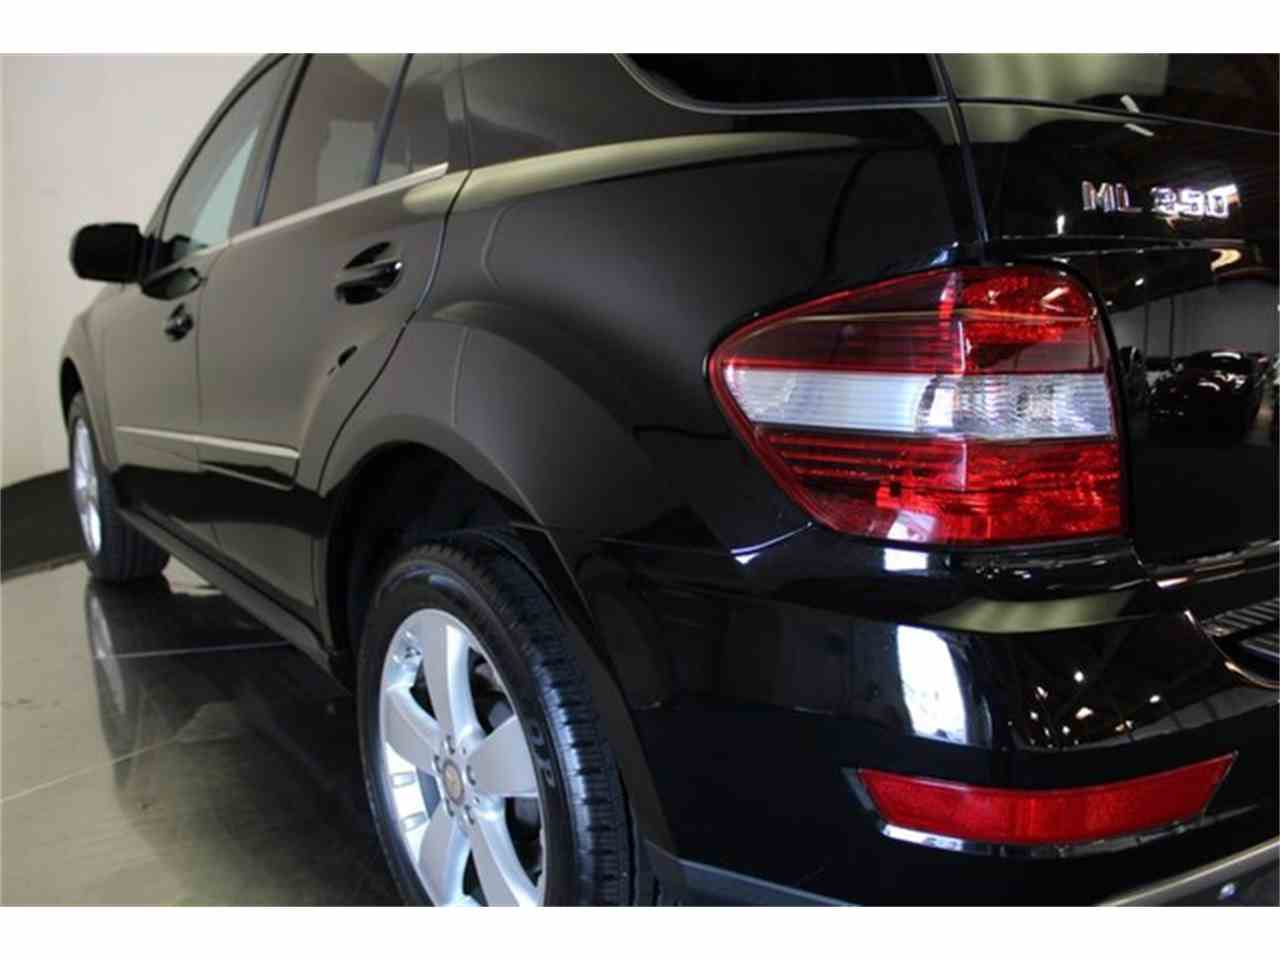 Large Picture of '10 Mercedes-Benz M-Class located in Anaheim California - $19,800.00 - JC2Q